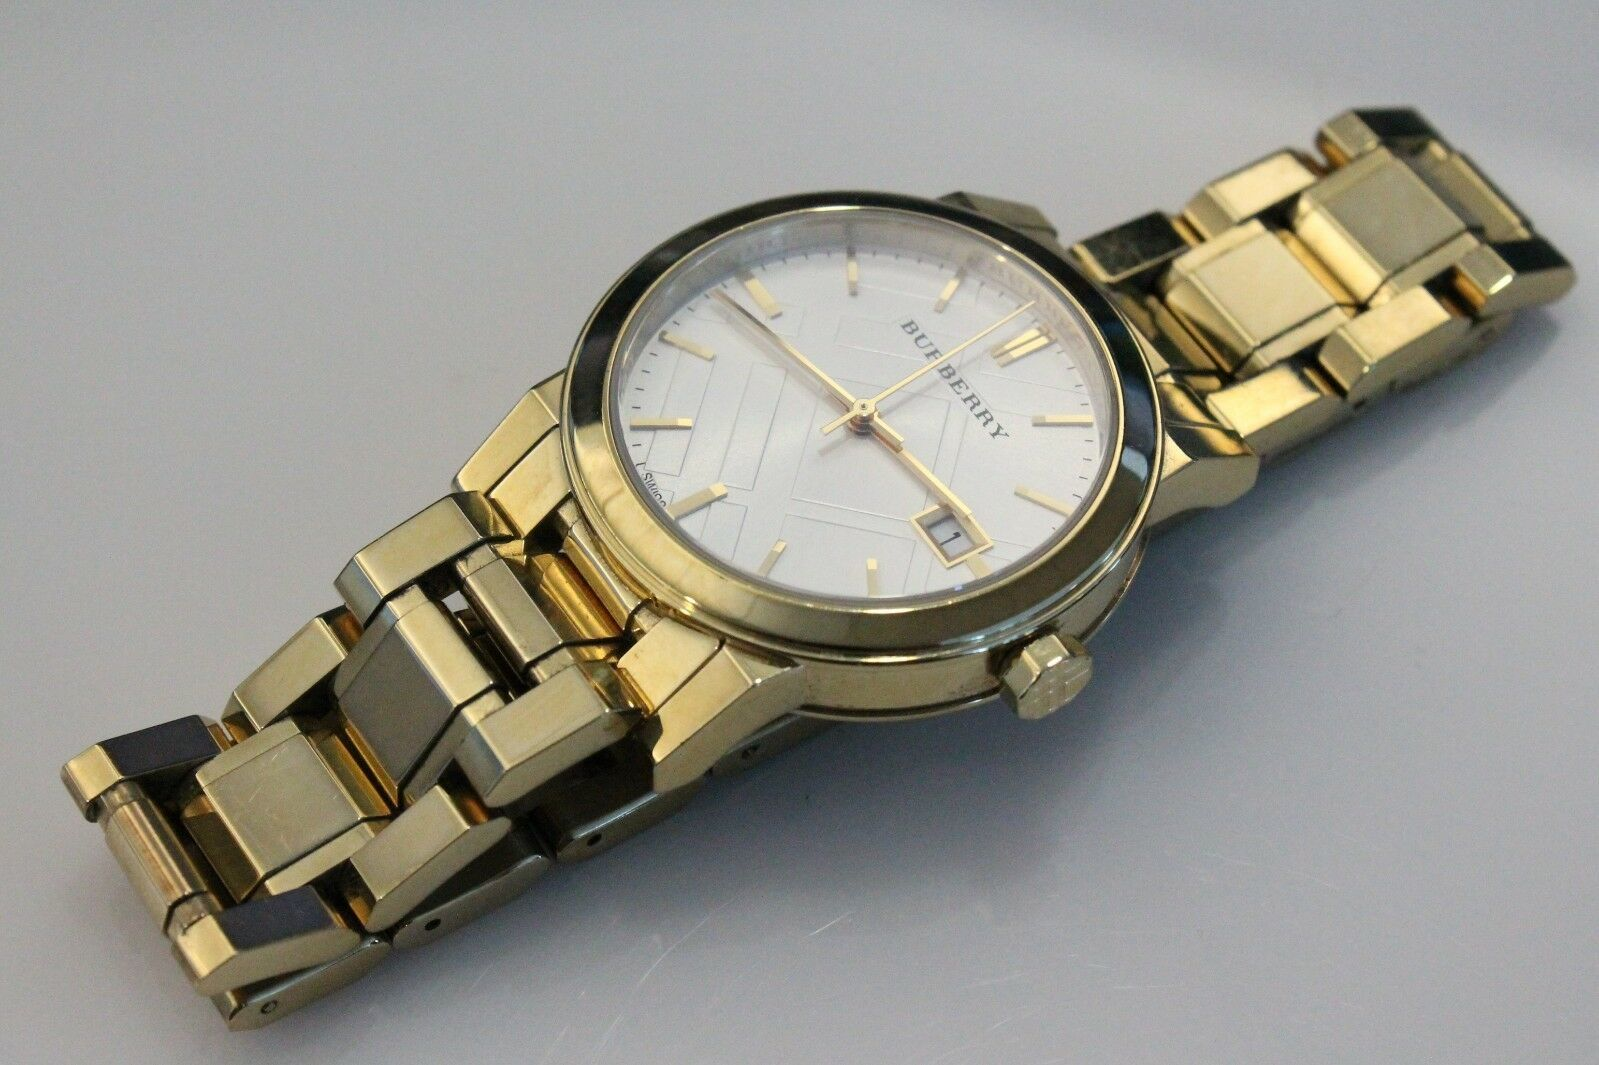 Burberry Unisex Gold Tone Stainless Steel Watch BU9103, Swiss, Sapphire Crystal